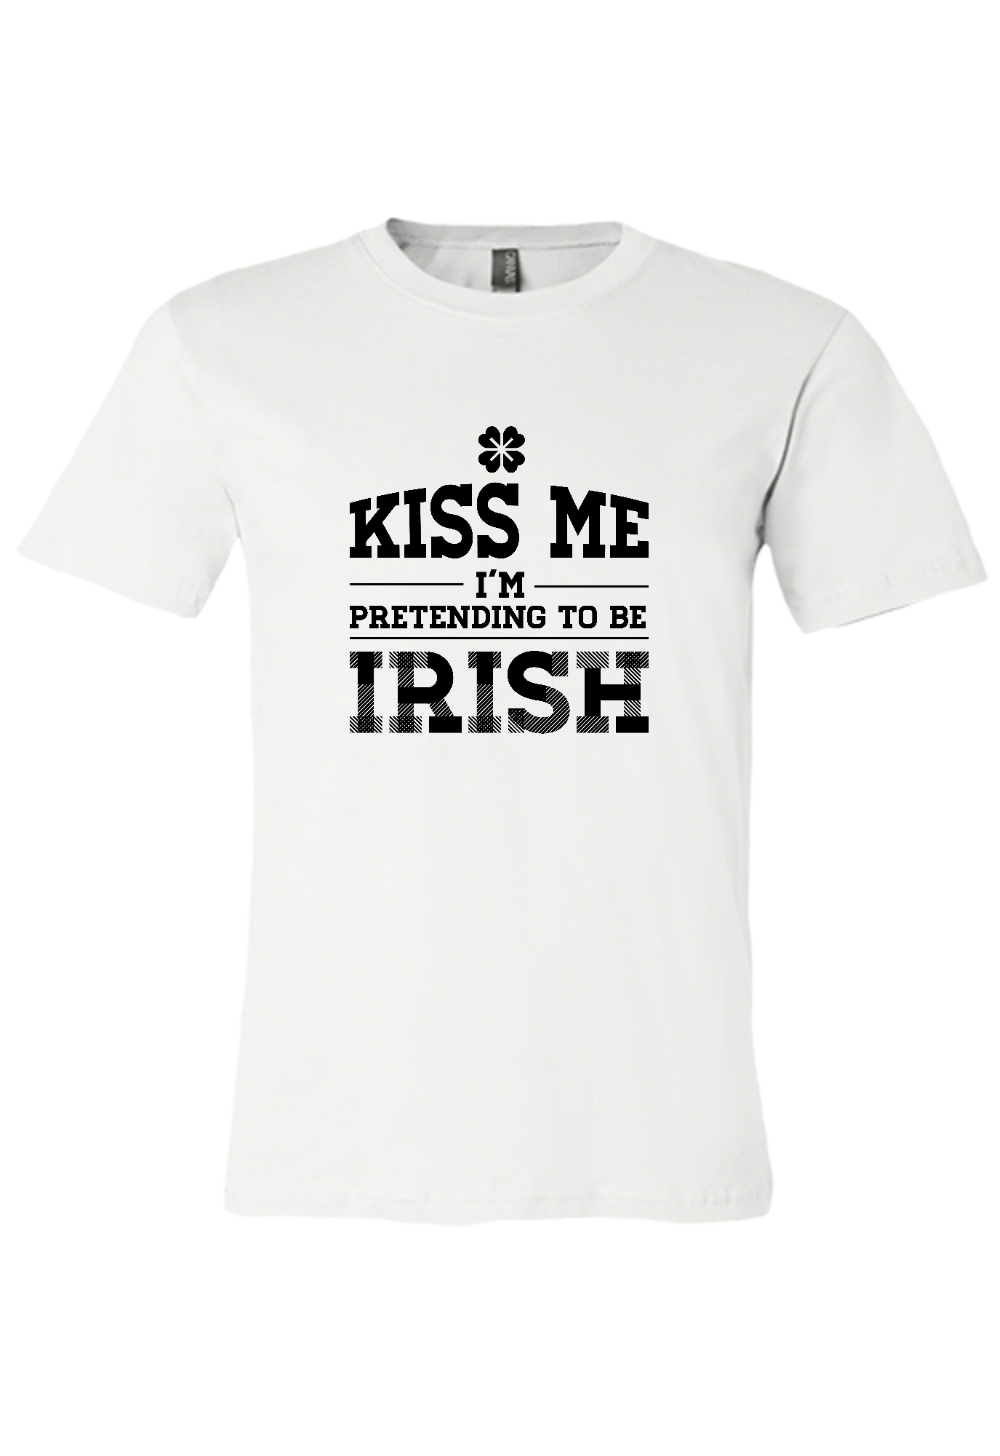 I am Pretending to be Irish Promo Shirt